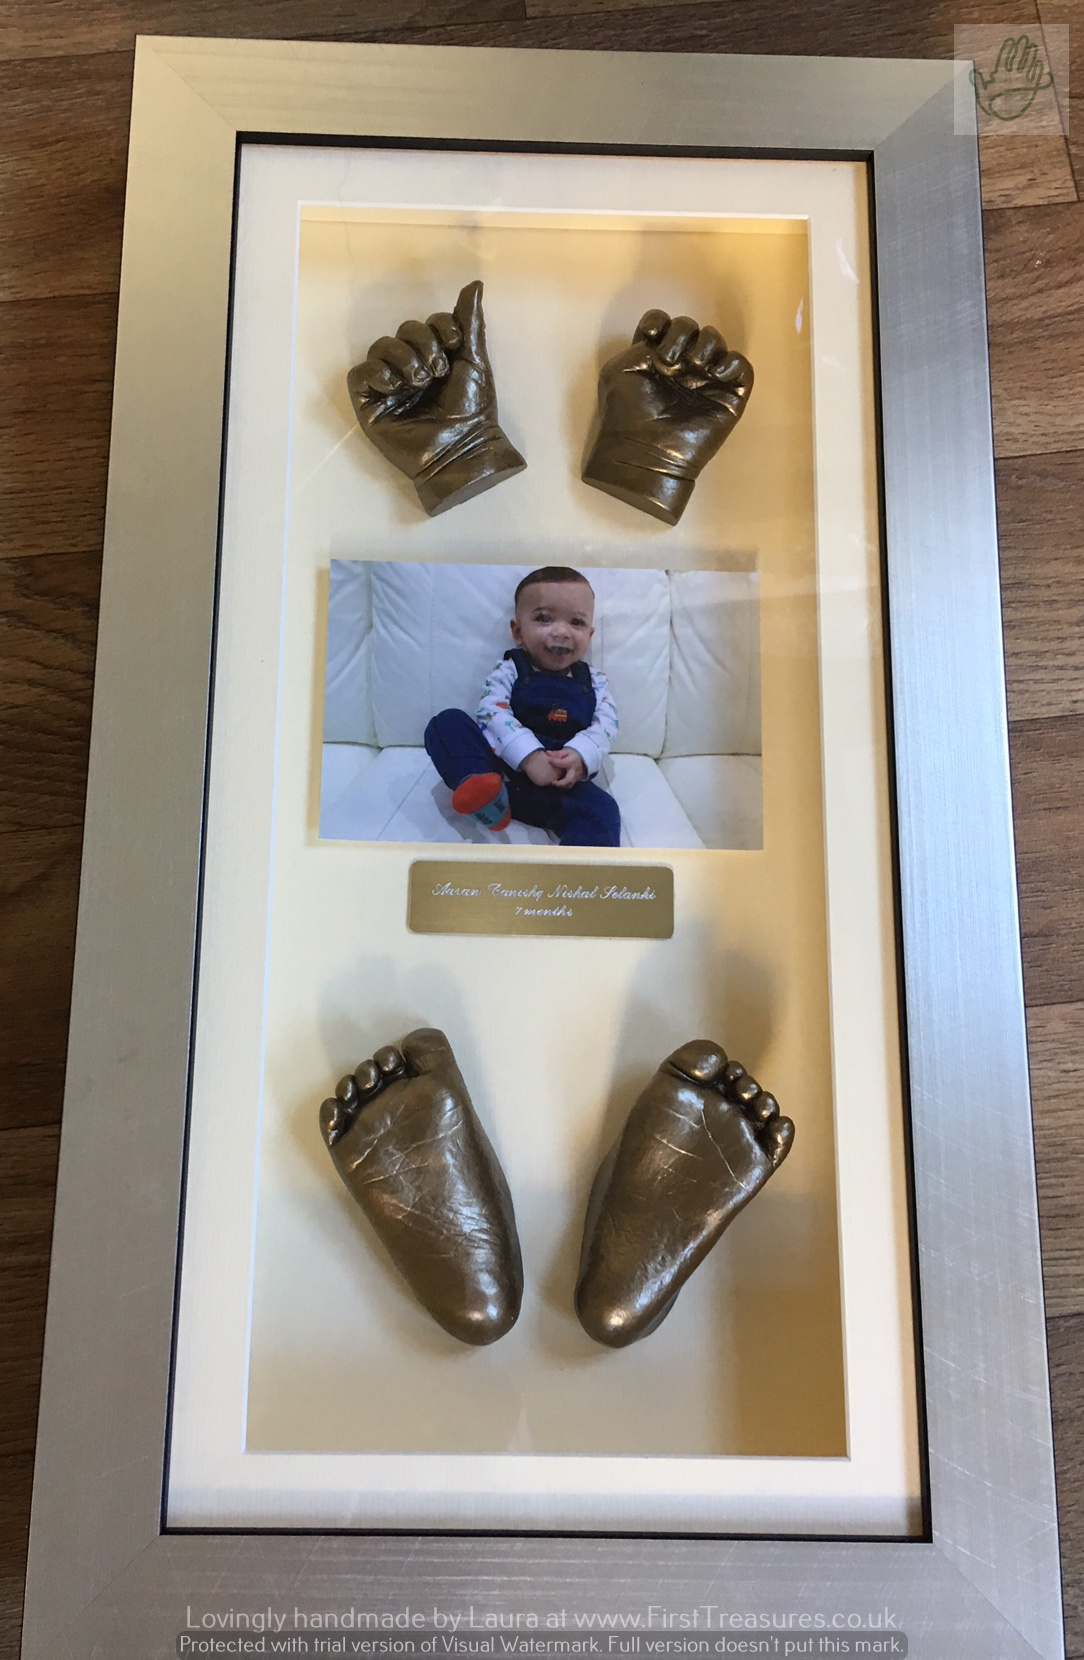 Baby castings by First Treasures